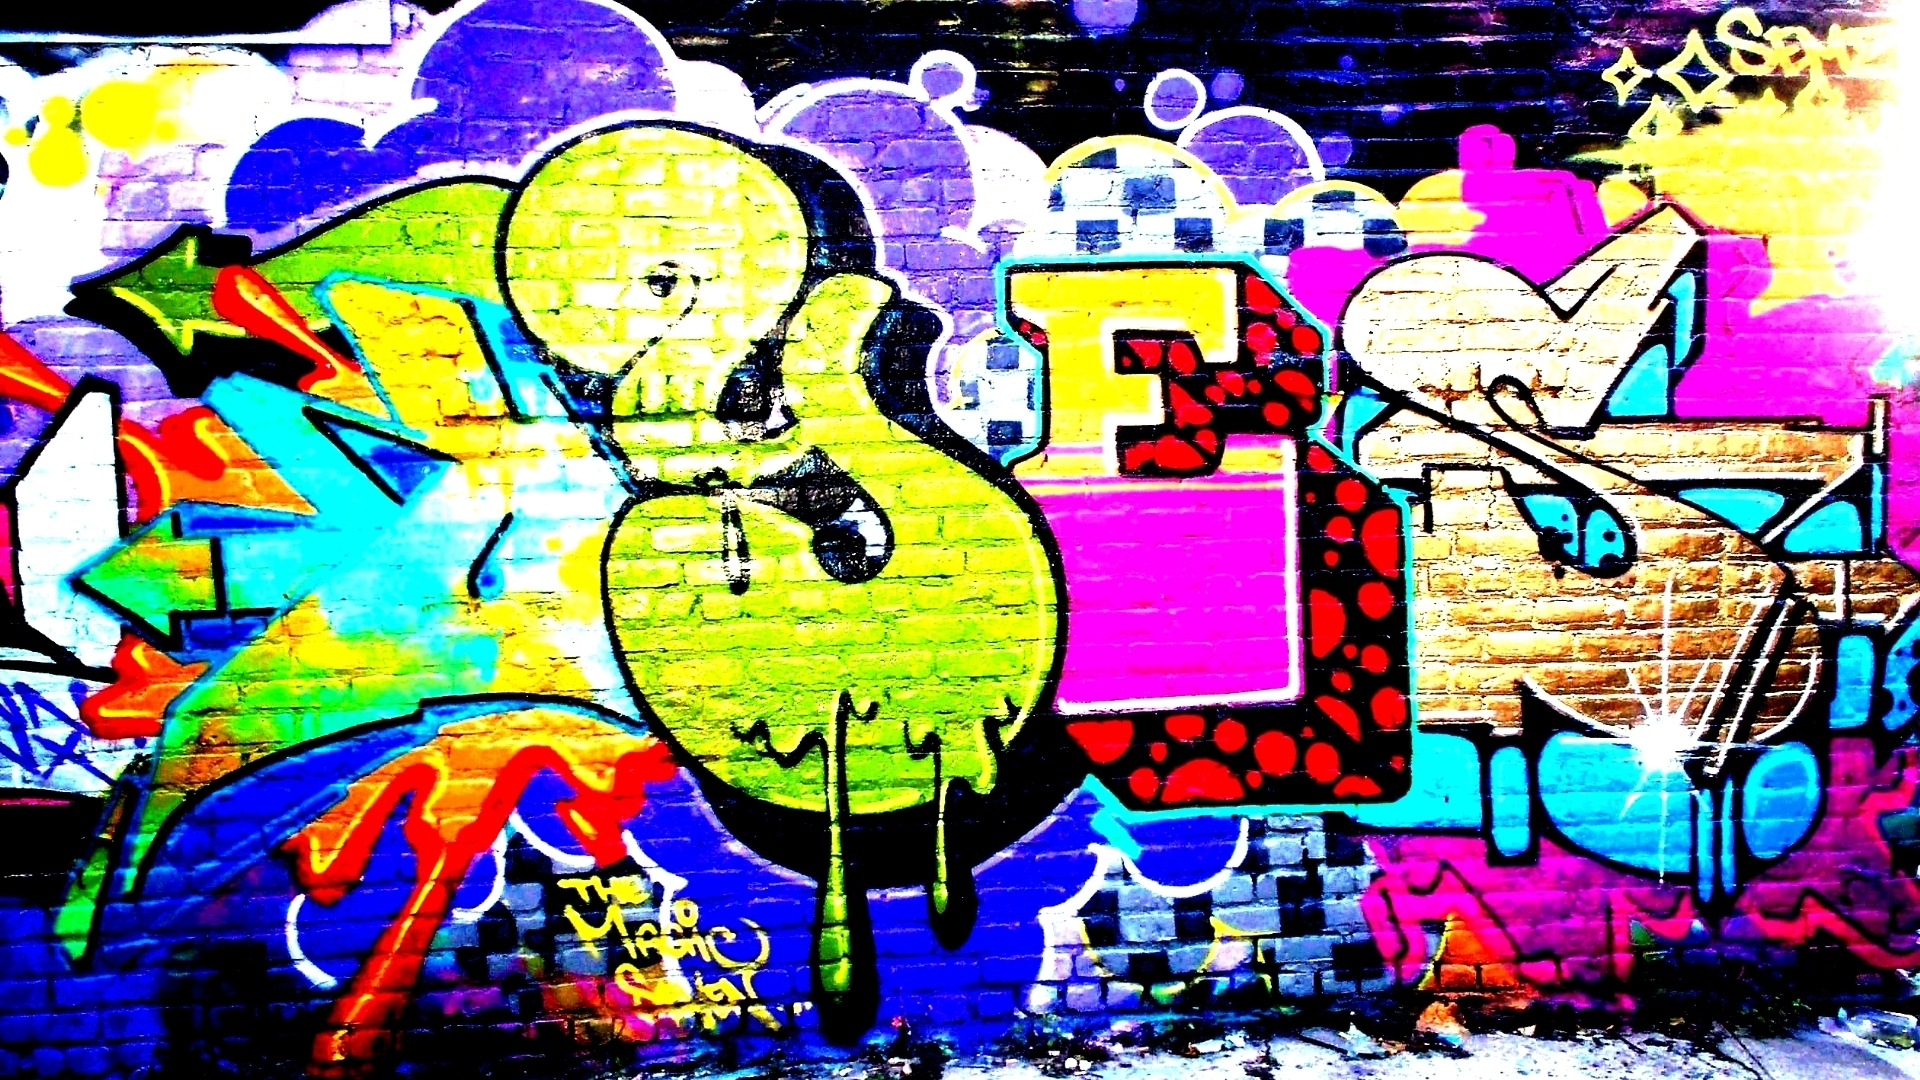 graffiti hd wallpaper full hd 1080p graffiti wallpapers hd, desktop